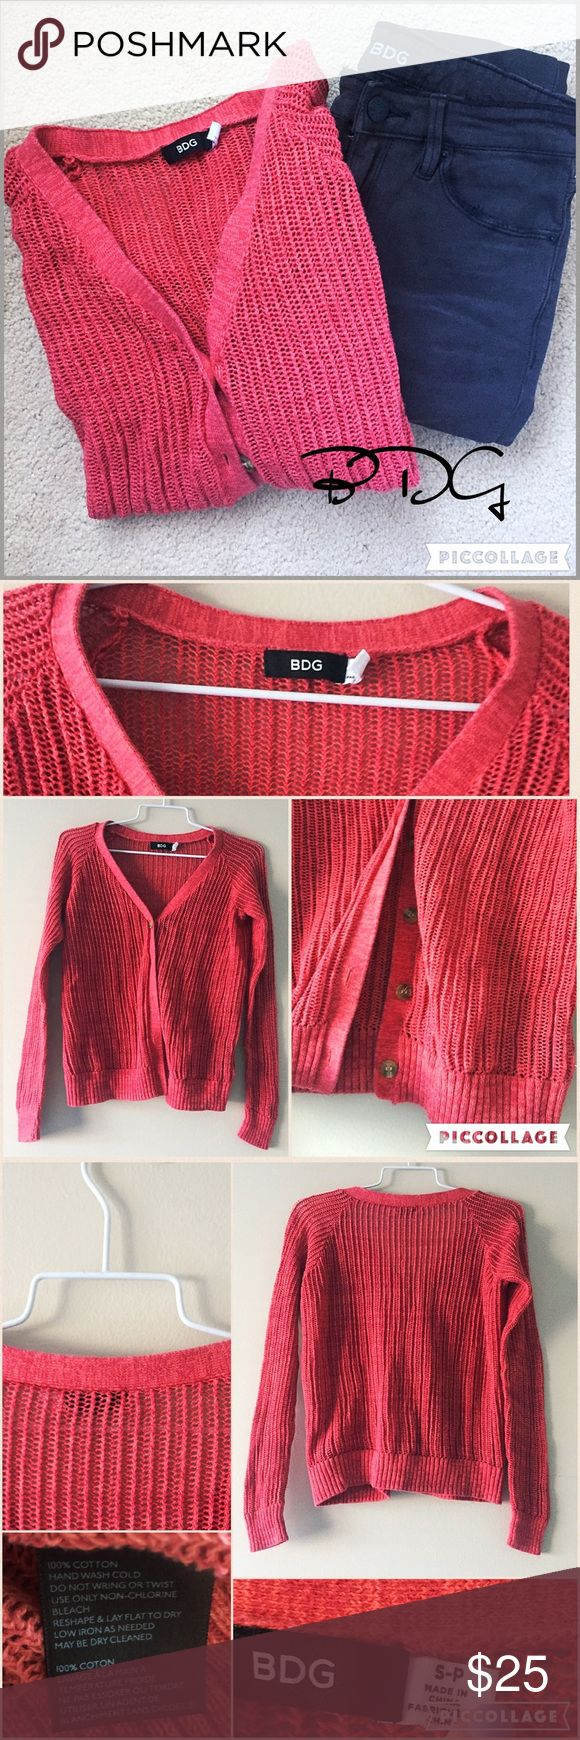 """Urban Outfitters BDG coral cardigan S BDG Urban Outfitters coral colored button down cardigan with V-neck, waffle material, and brown buttons. 100% cotton and in excellent condition. 20"""" bust & 22"""" long. Bundle & save💖 Urban Outfitters Sweaters Cardigans"""